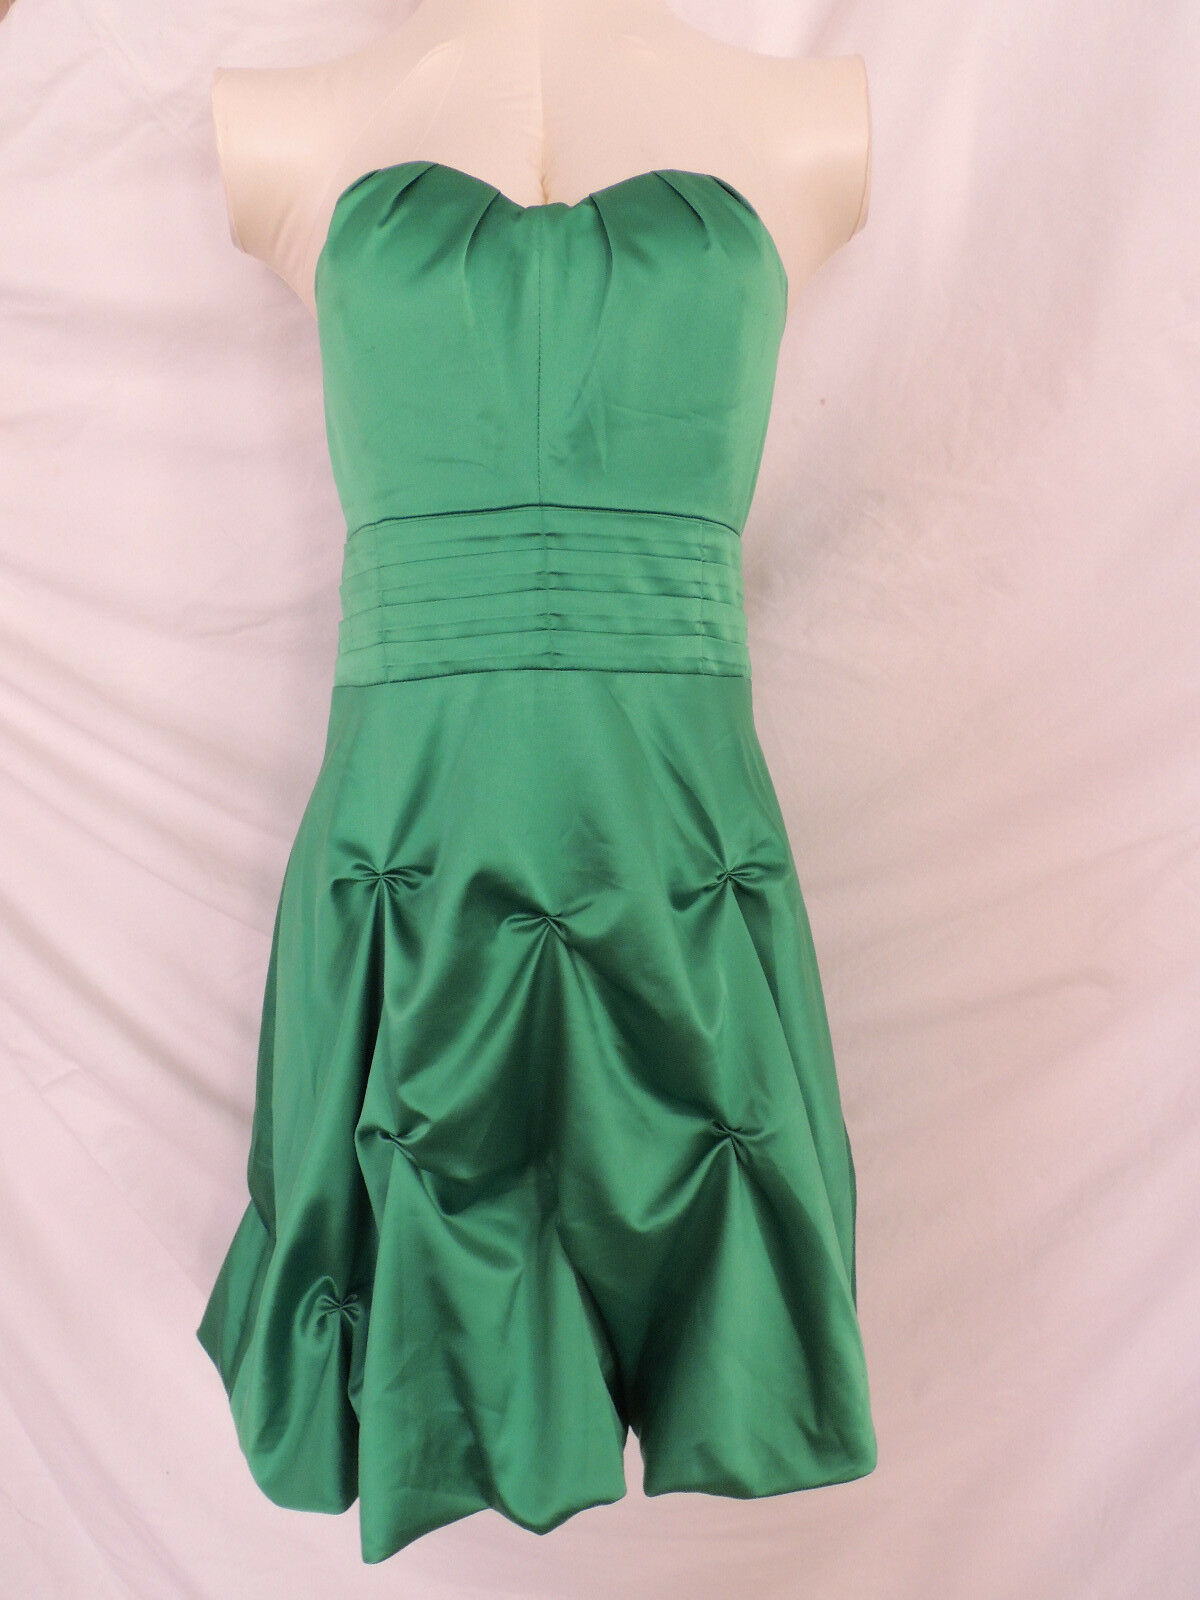 KITTY Sexy Yet Classy ADORABLE Satin Green Stretchy Dress Pin Up Vintage S